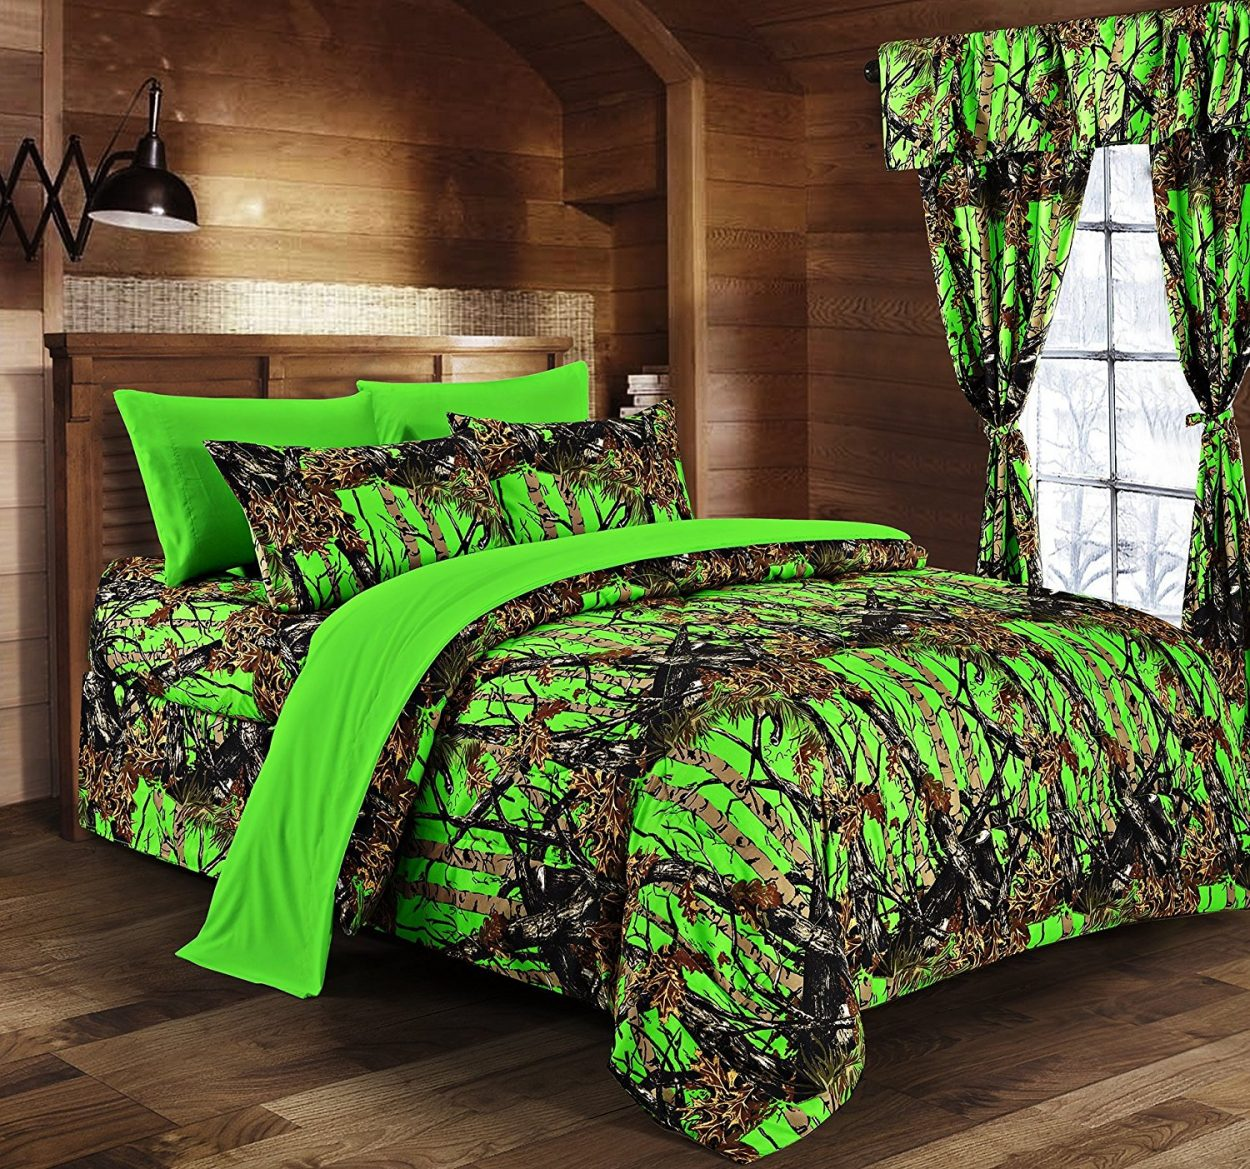 Well known Day-Glow Green Camo Sheet Set - The Swamp Company JL14